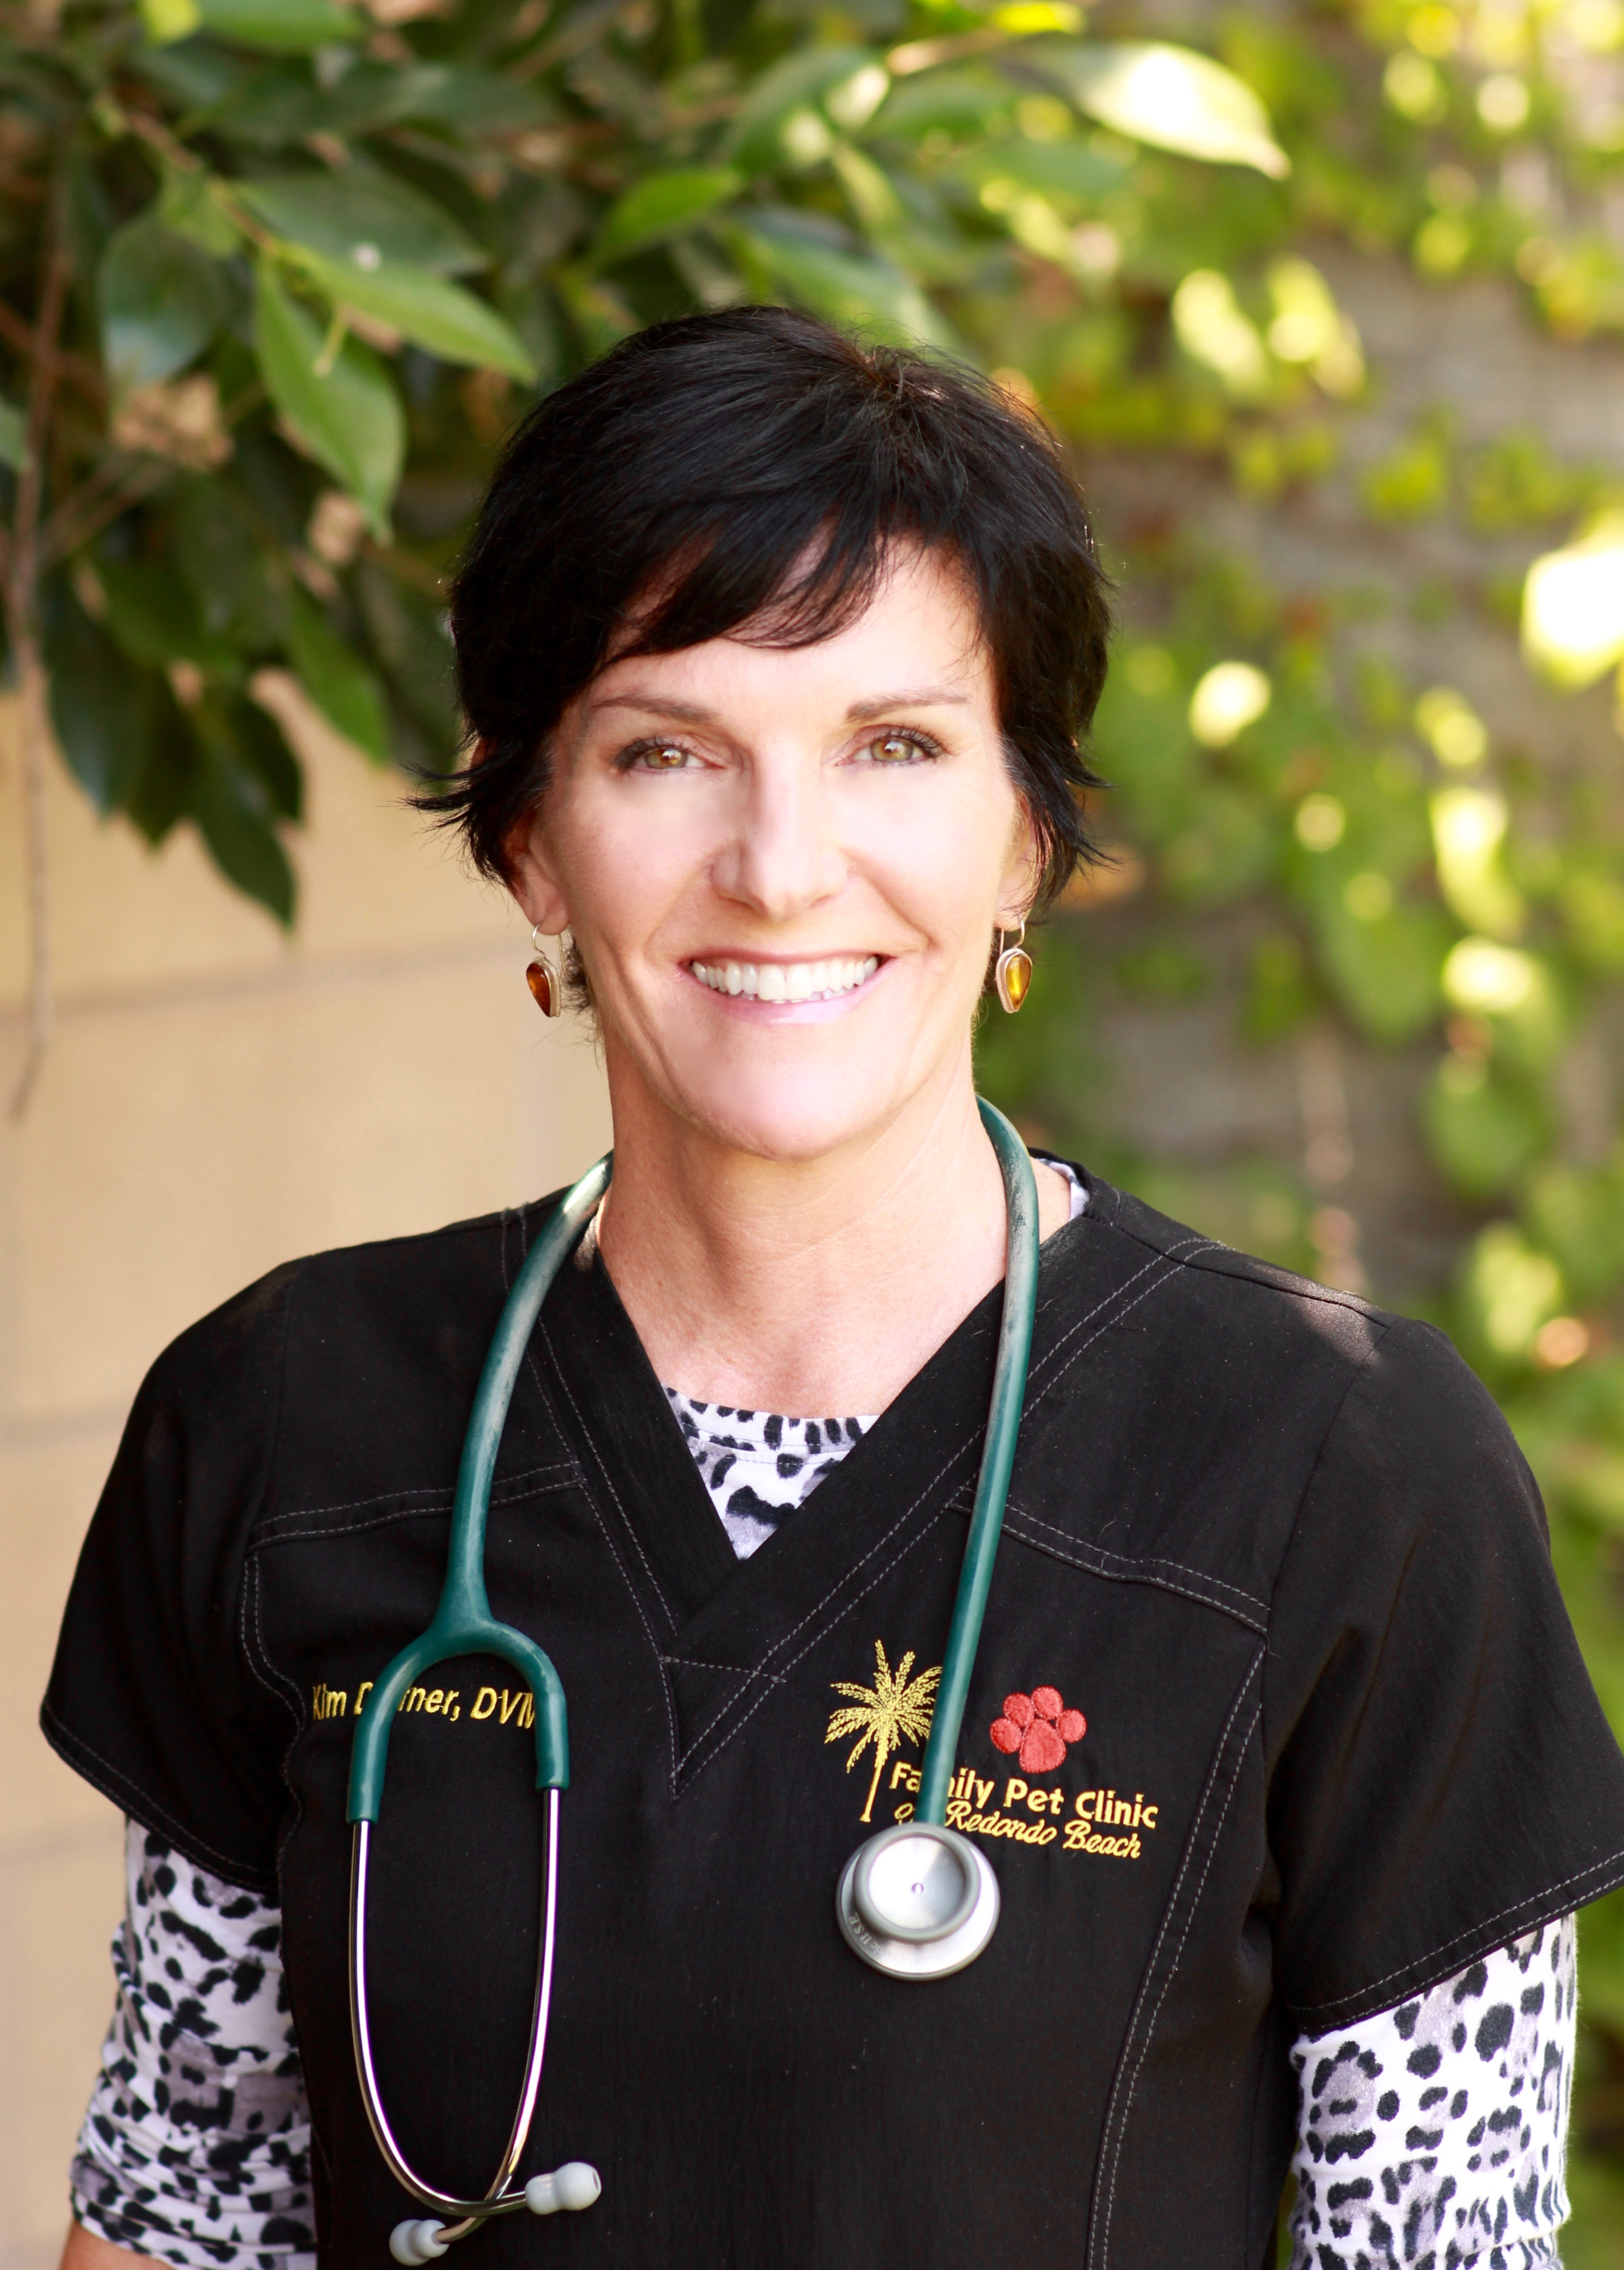 Dr. Kimberly Daffner - Family Pet Clinic of Redondo Beach